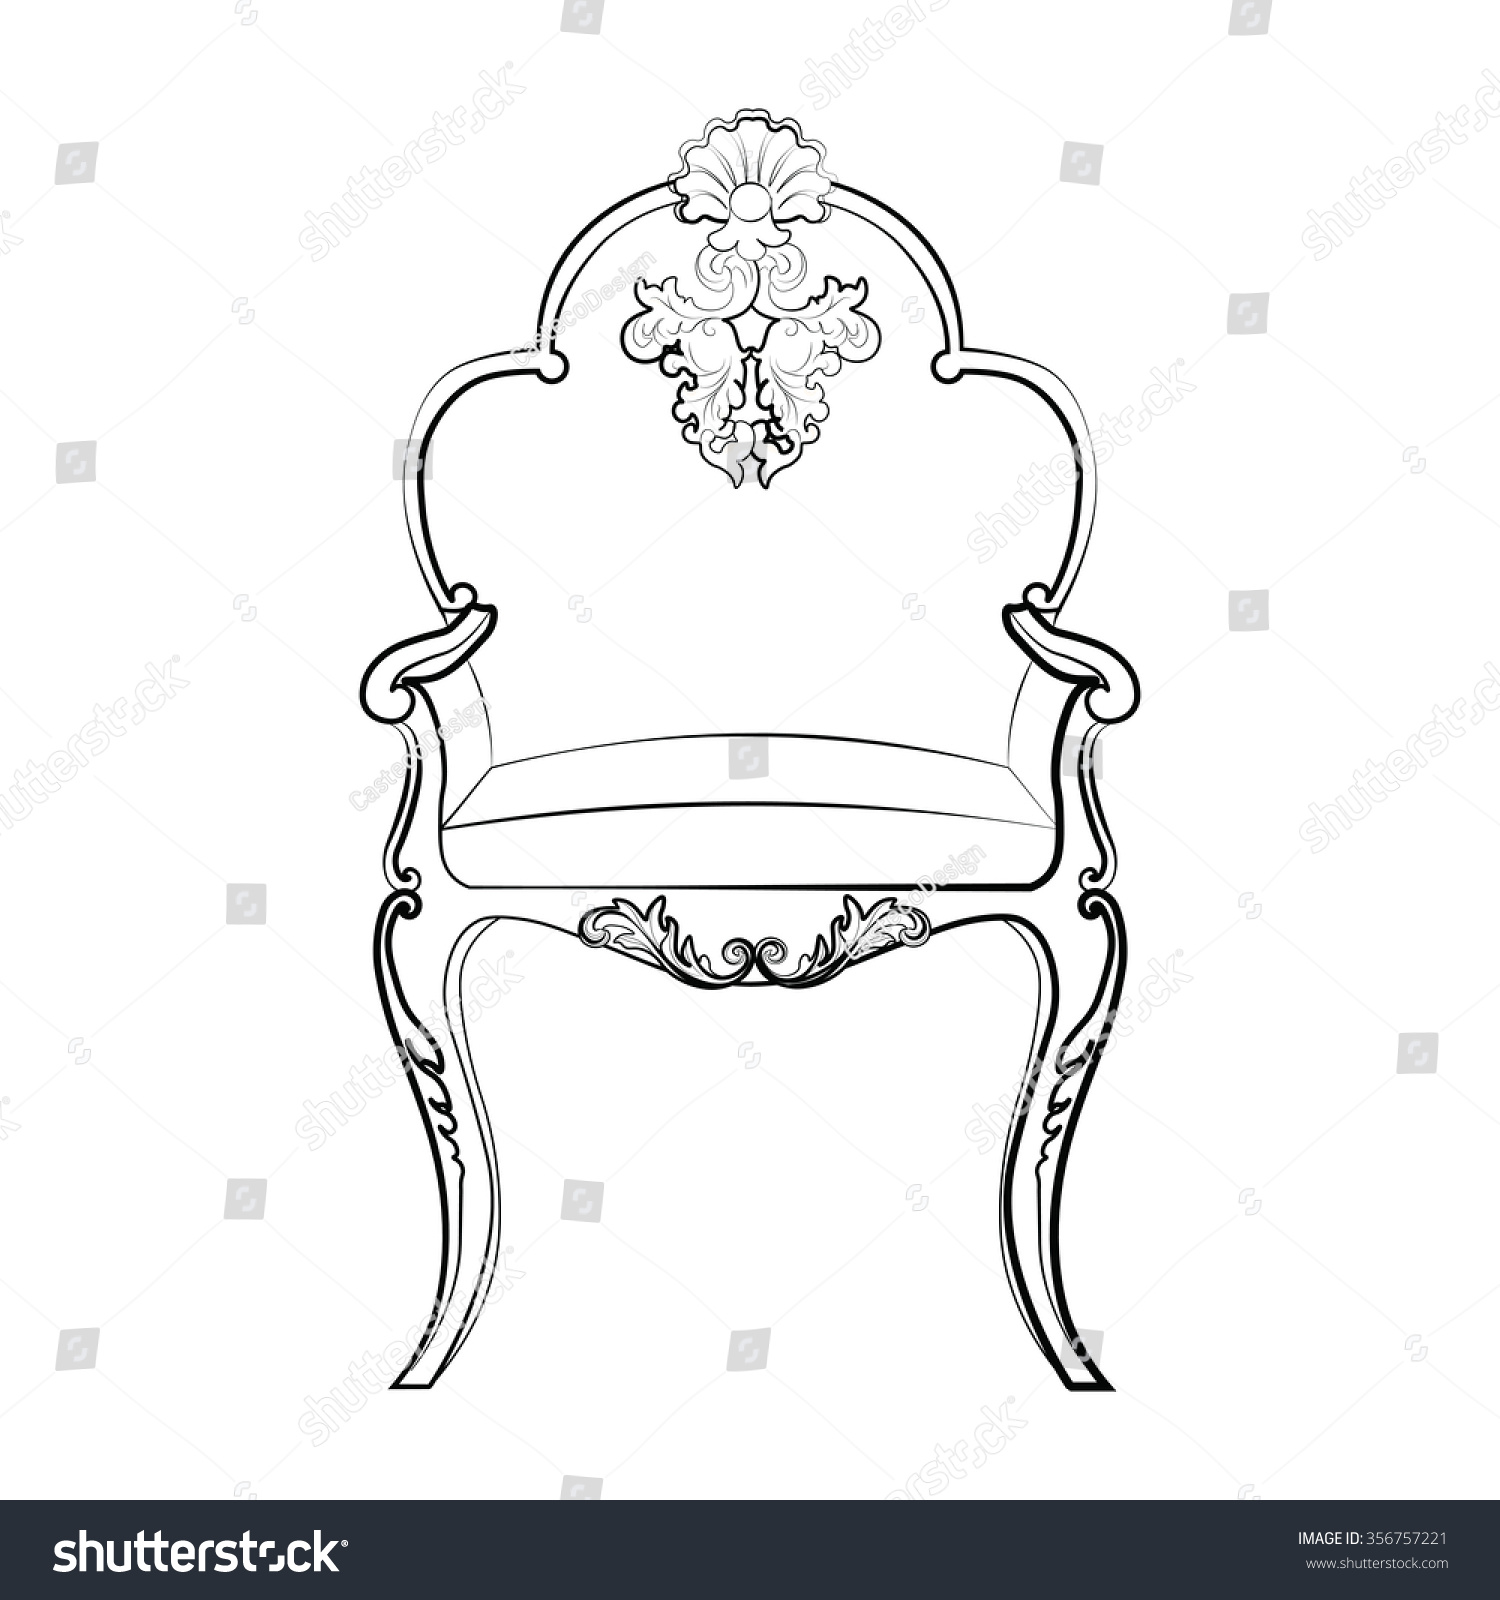 Rococo furniture sketch - Imperial Royal Chair With Classic Rococo Damask Ornaments Vector